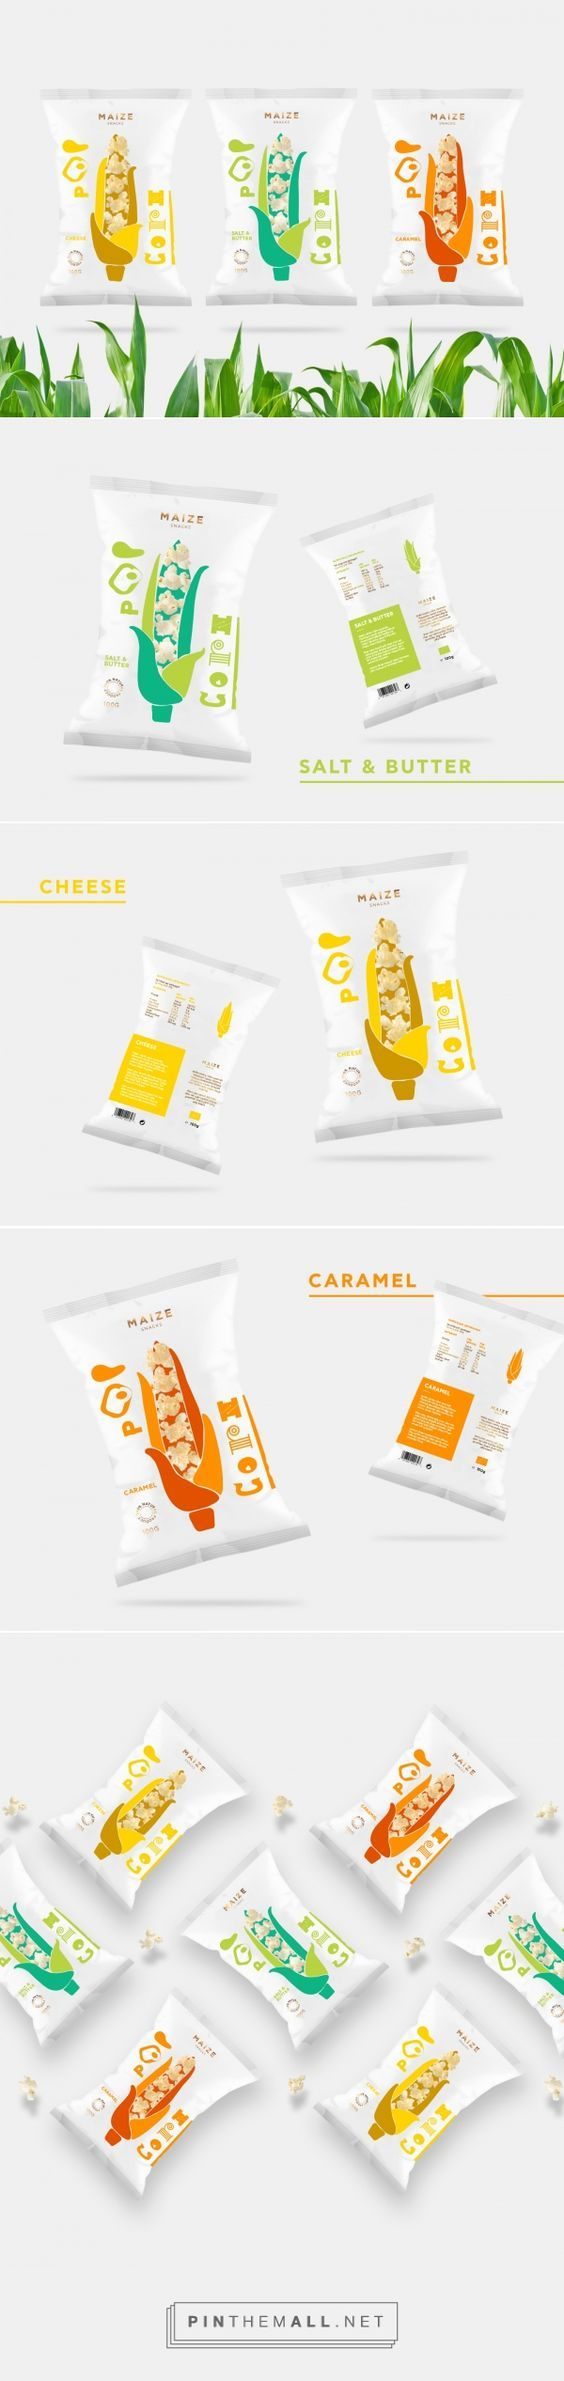 Maize Popcorn Packaging by Gabriela Dule | Fivestar Branding Agency – Design and Branding Agency & Curated Inspiration Gallery